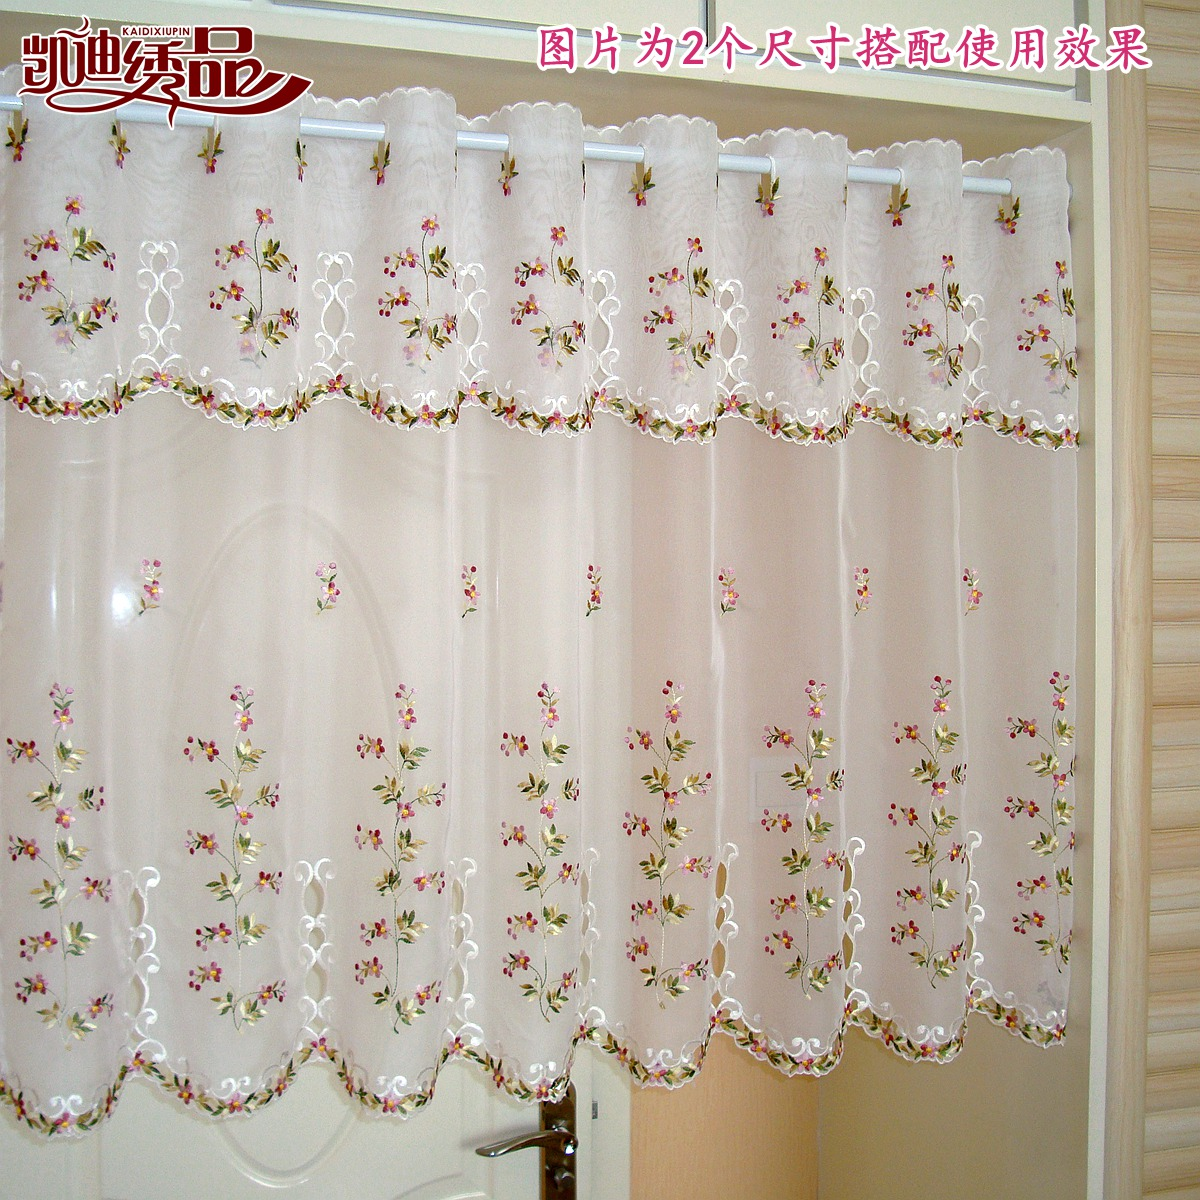 short kitchen curtains corner shelves morden tube rustic window curtain embroidery fabric ...